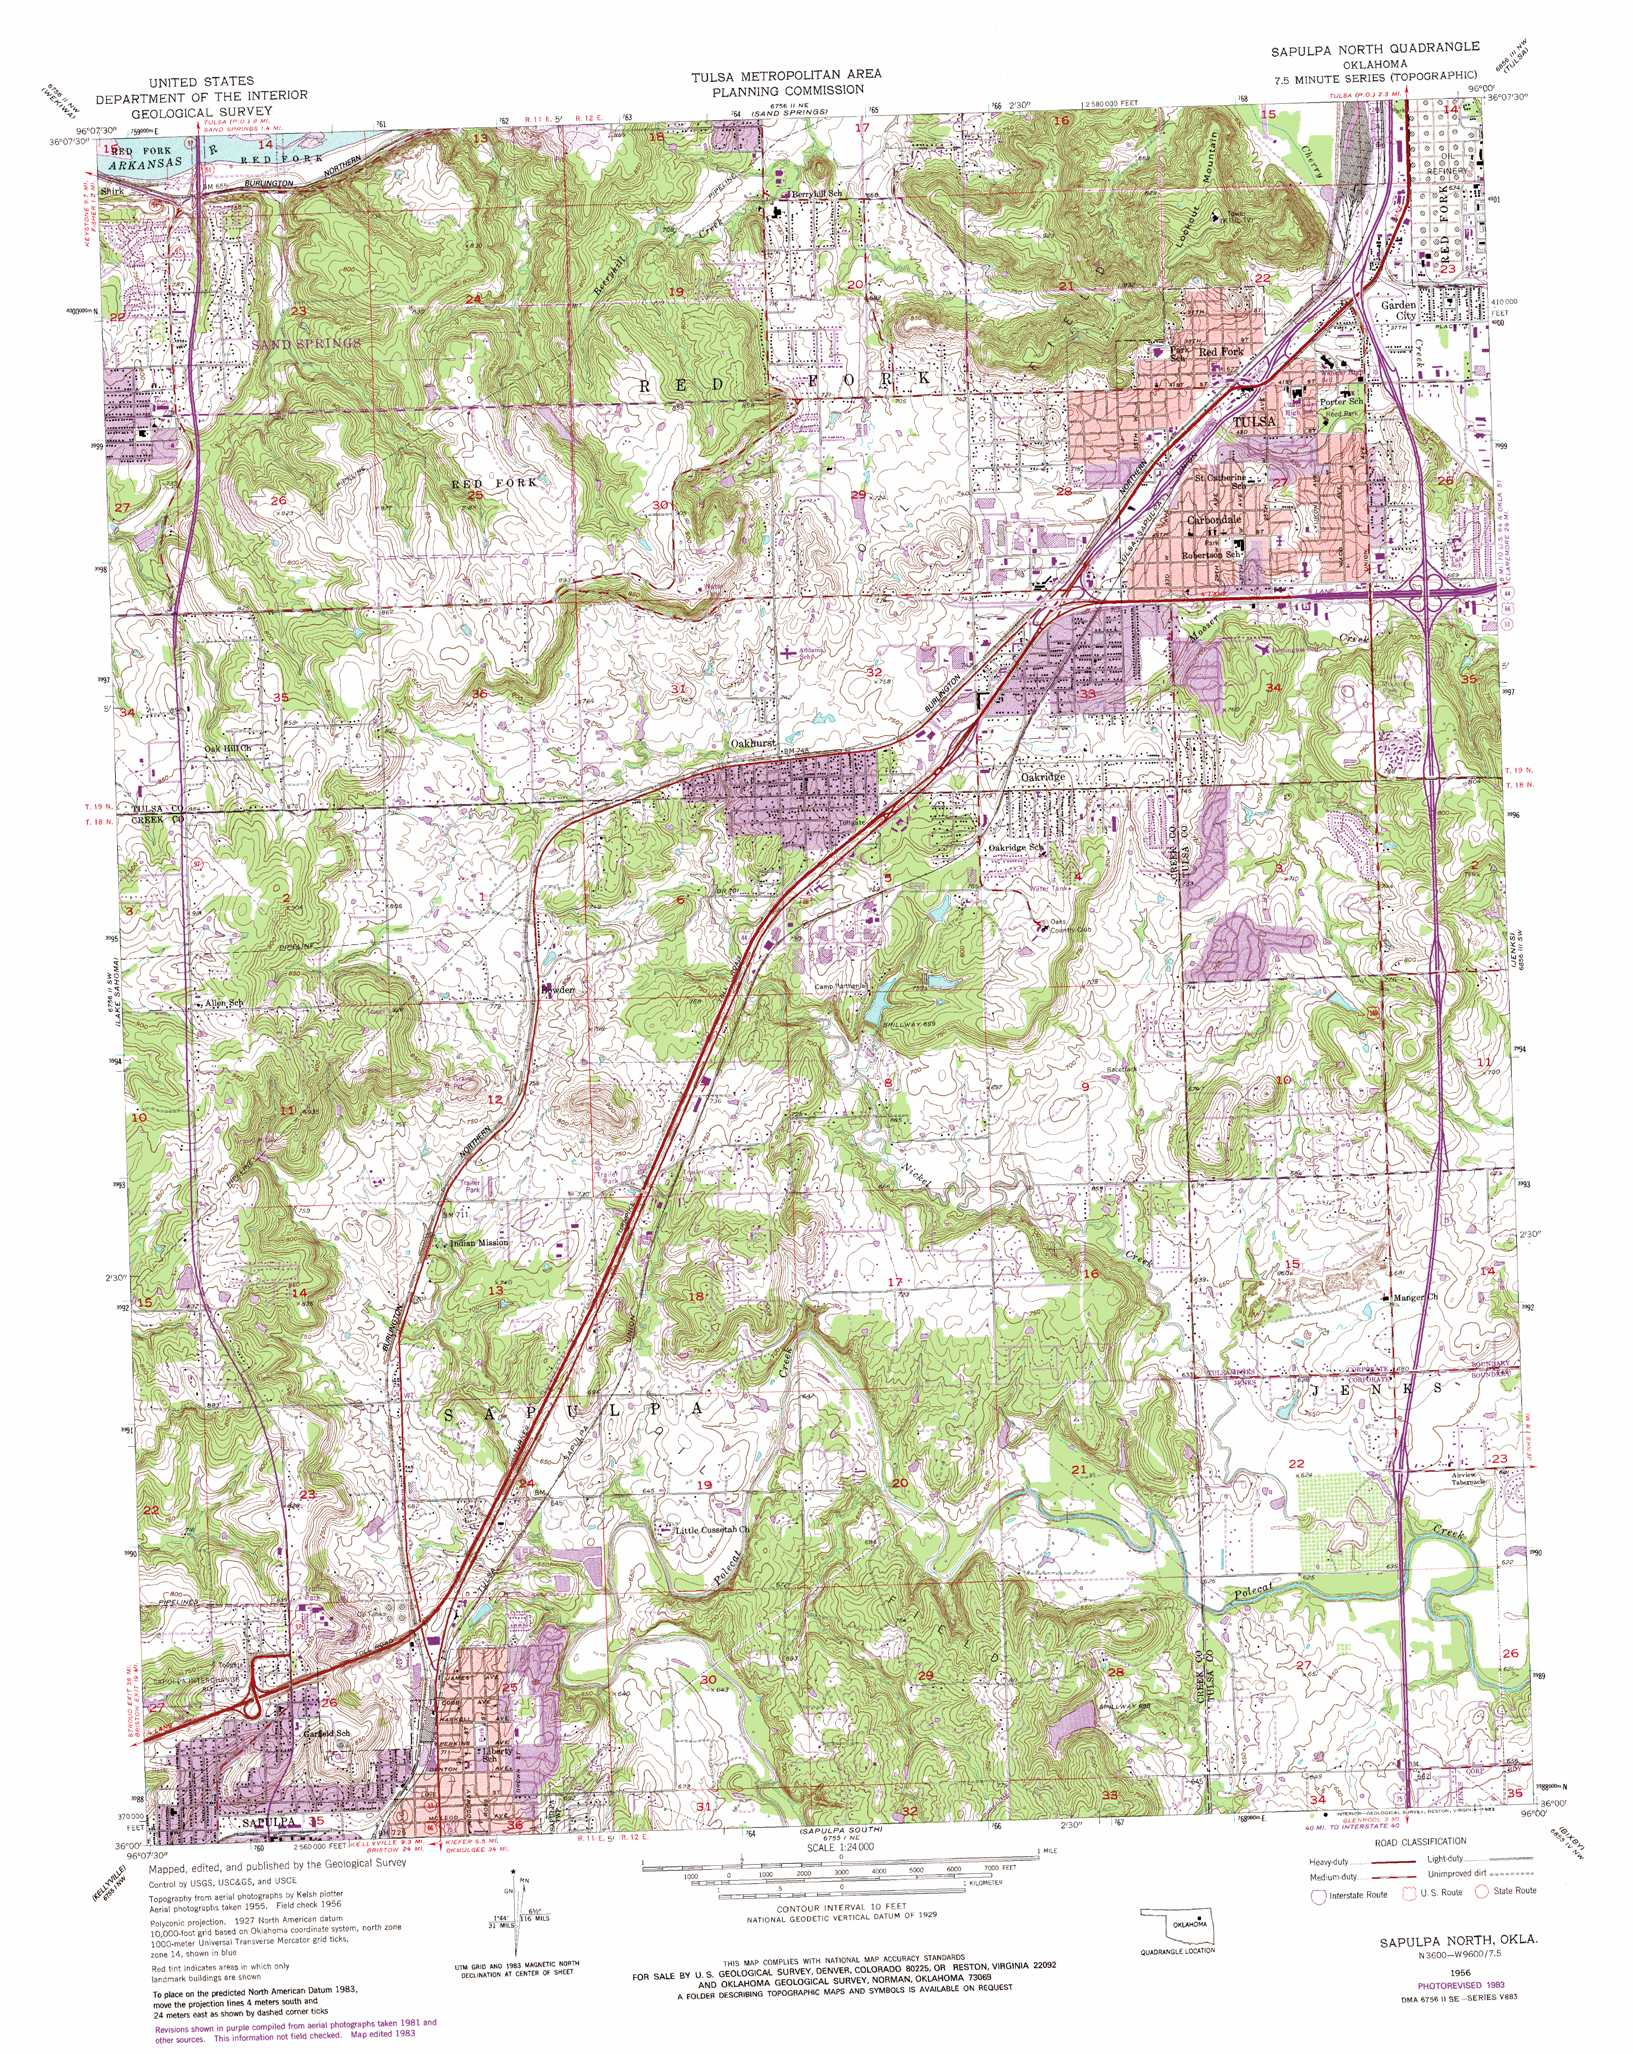 Sapulpa North Topographic Map, OK